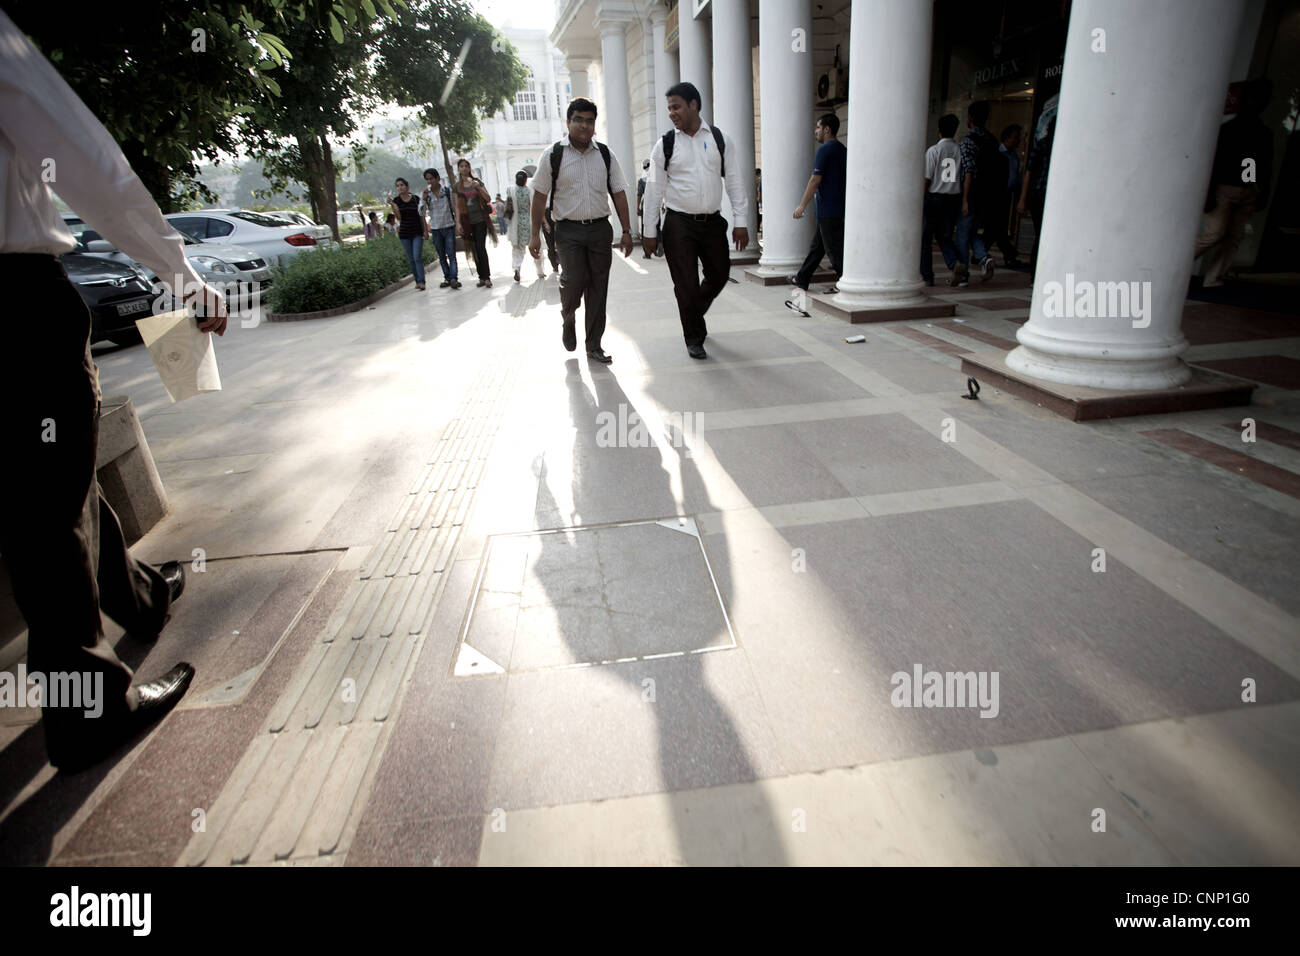 Shoppers at Connaught Place in New Delhi, India. - Stock Image